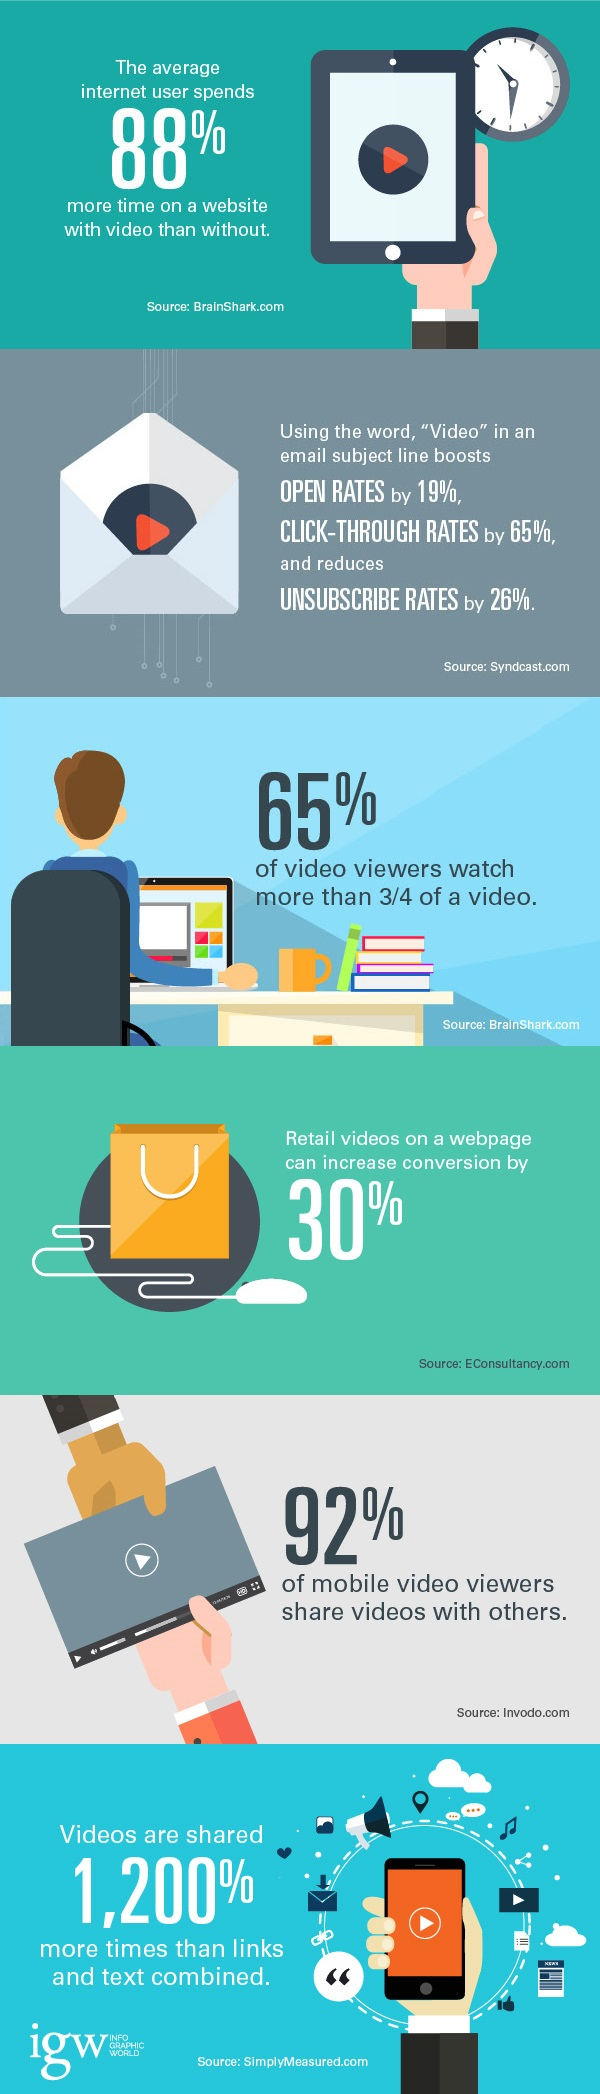 Staggering Video Marketing Statistics That Prove Video is Here To Stay - infographic